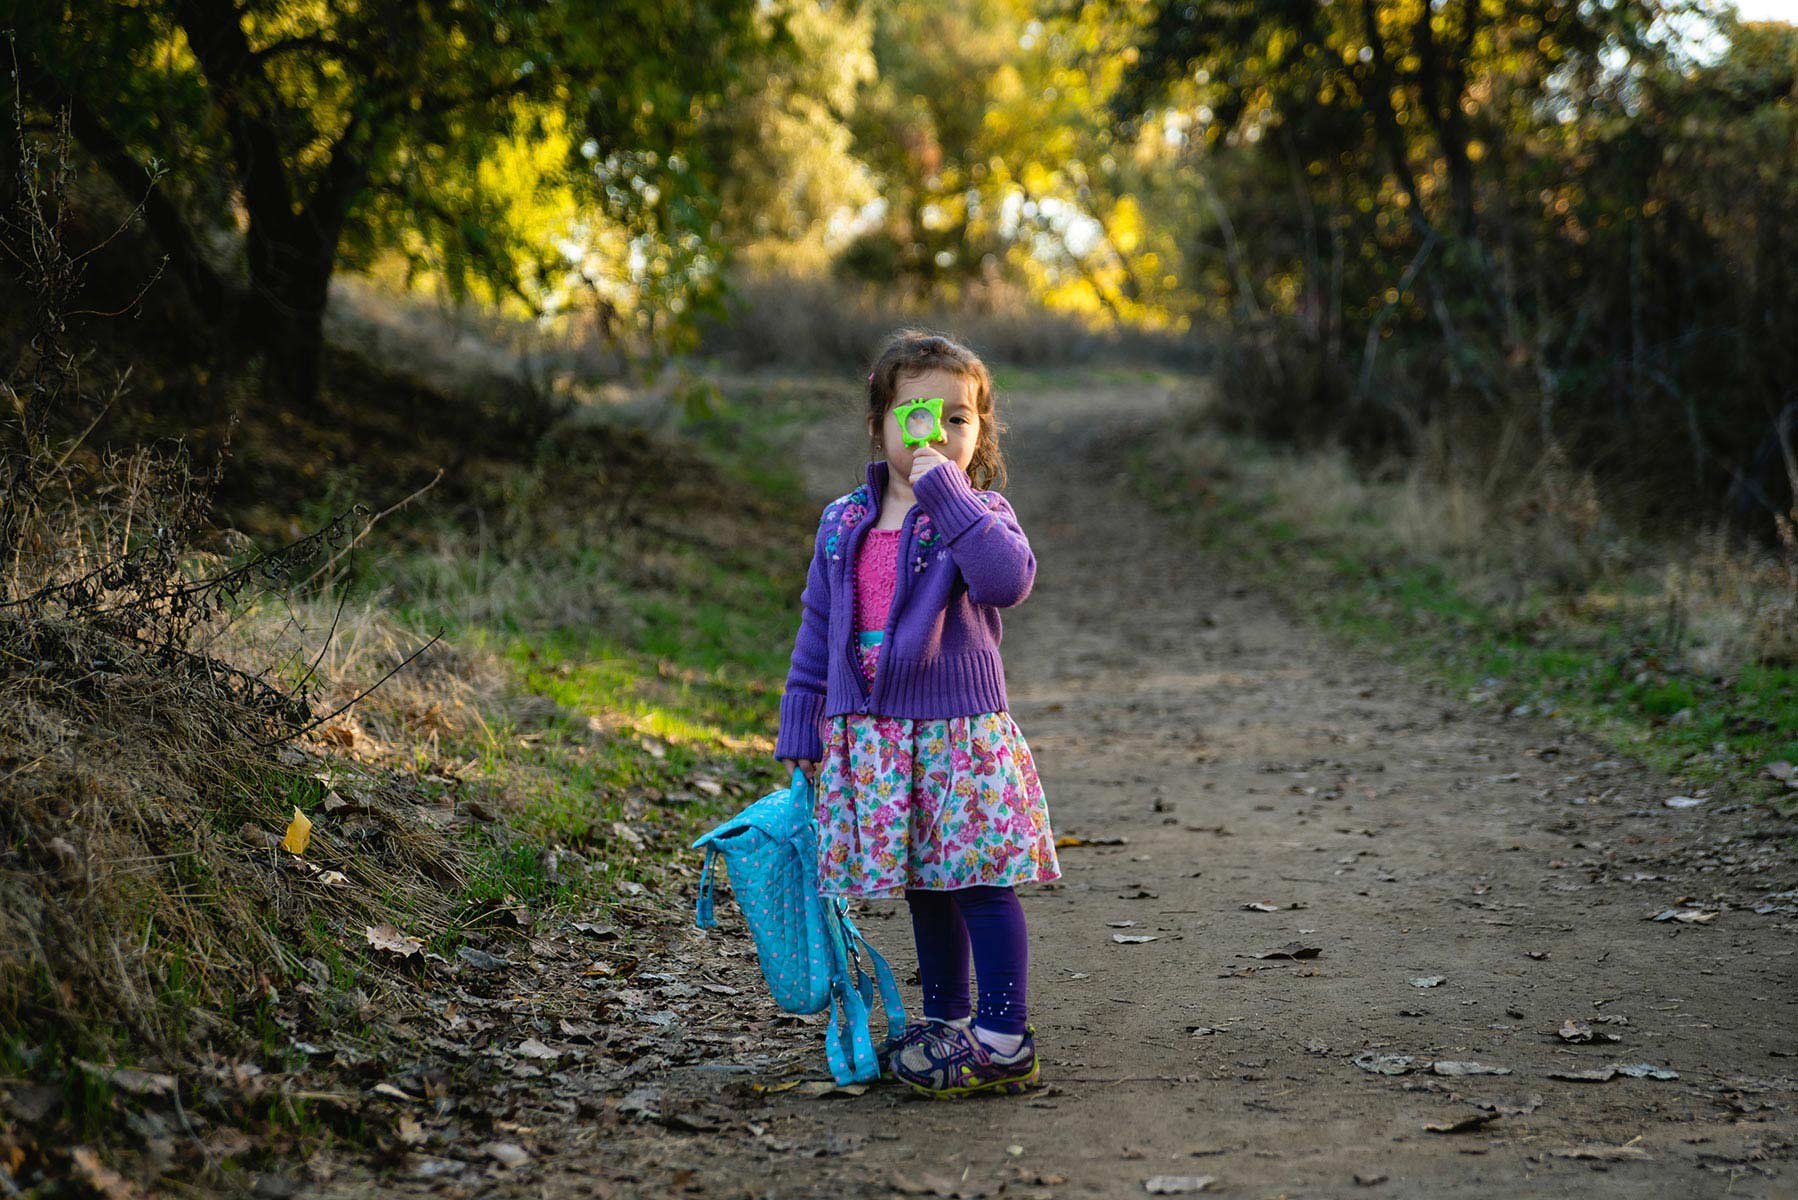 Little girl looking through magnifying glass on a dirt path in Fair Oaks CA